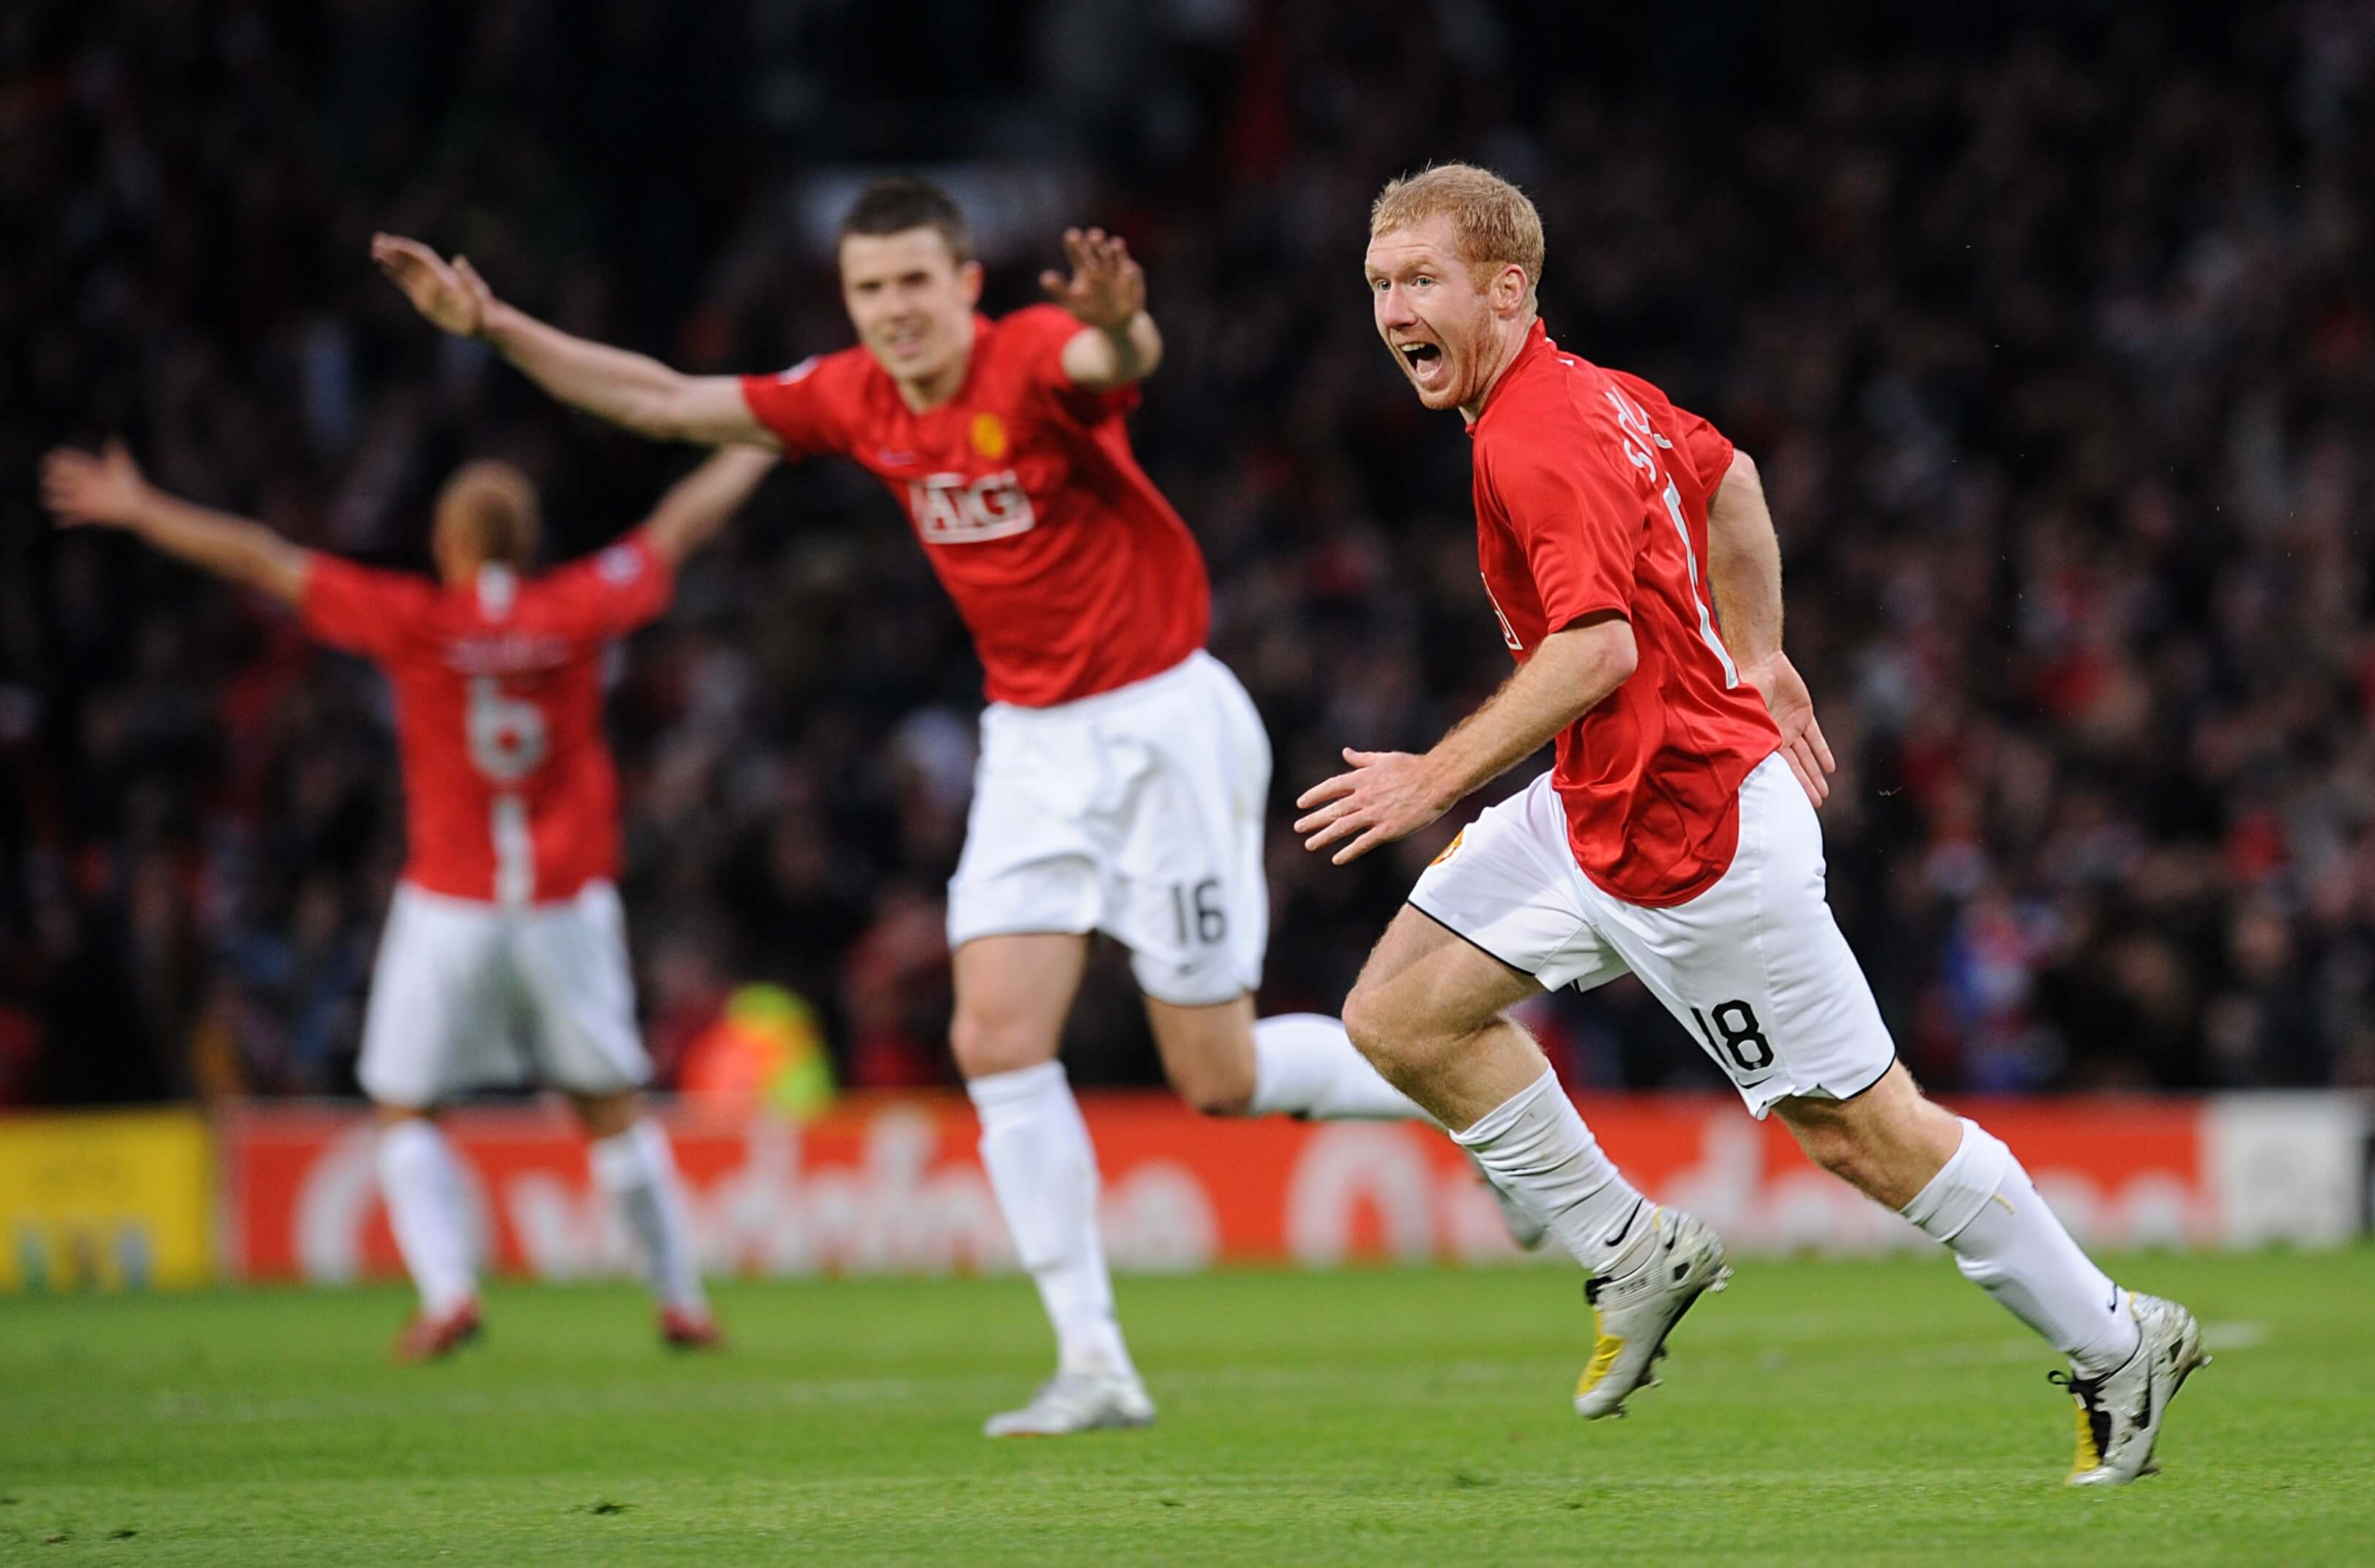 Retro Red: Manchester United's victory over Barcelona paves the way for 2008 glory